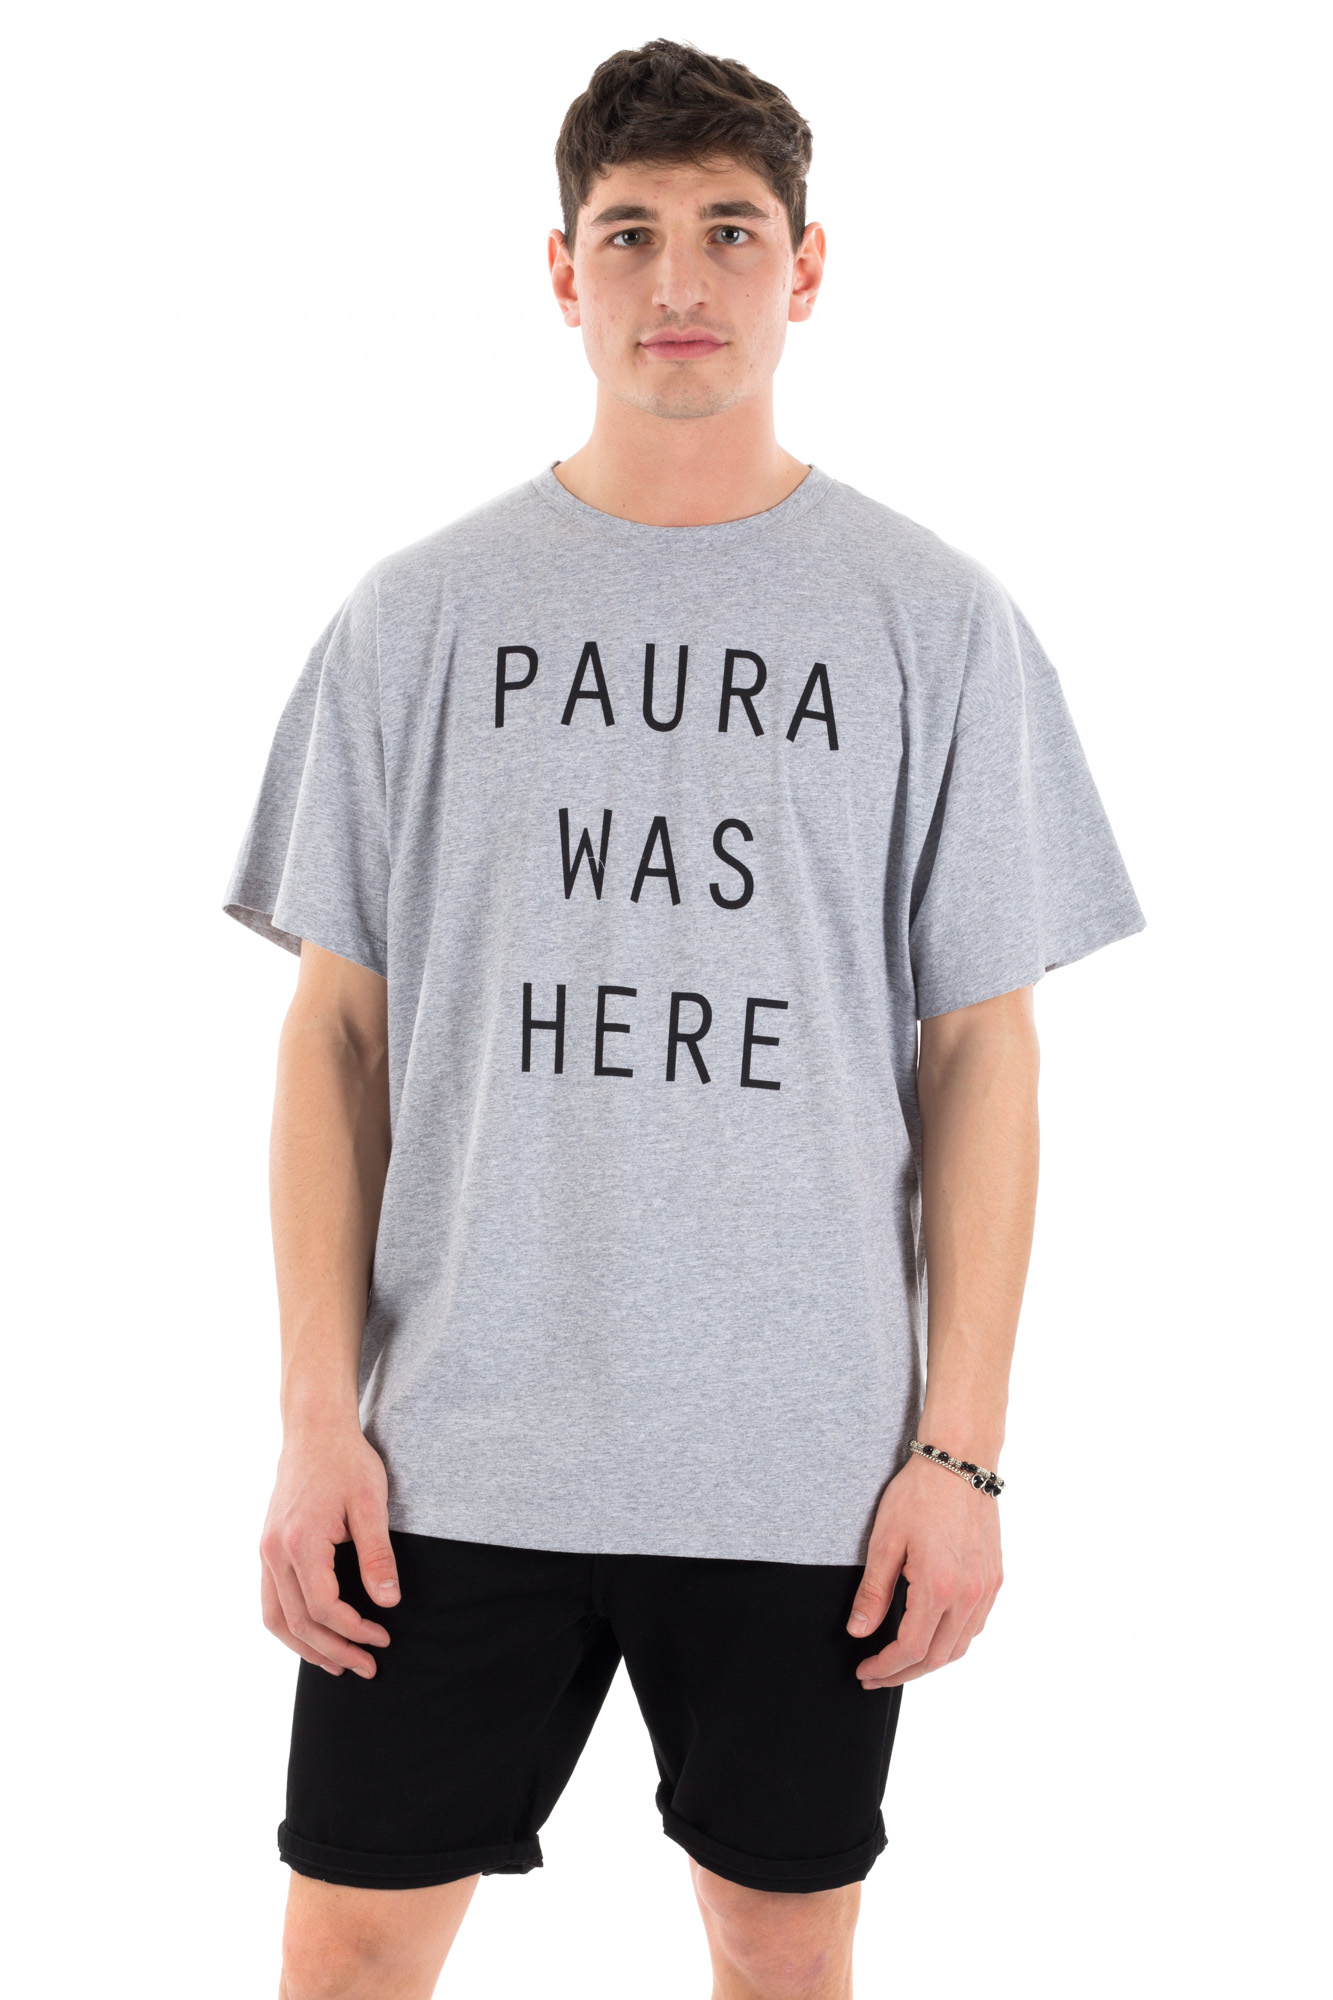 Paura - Oversized T-shirt with graphics